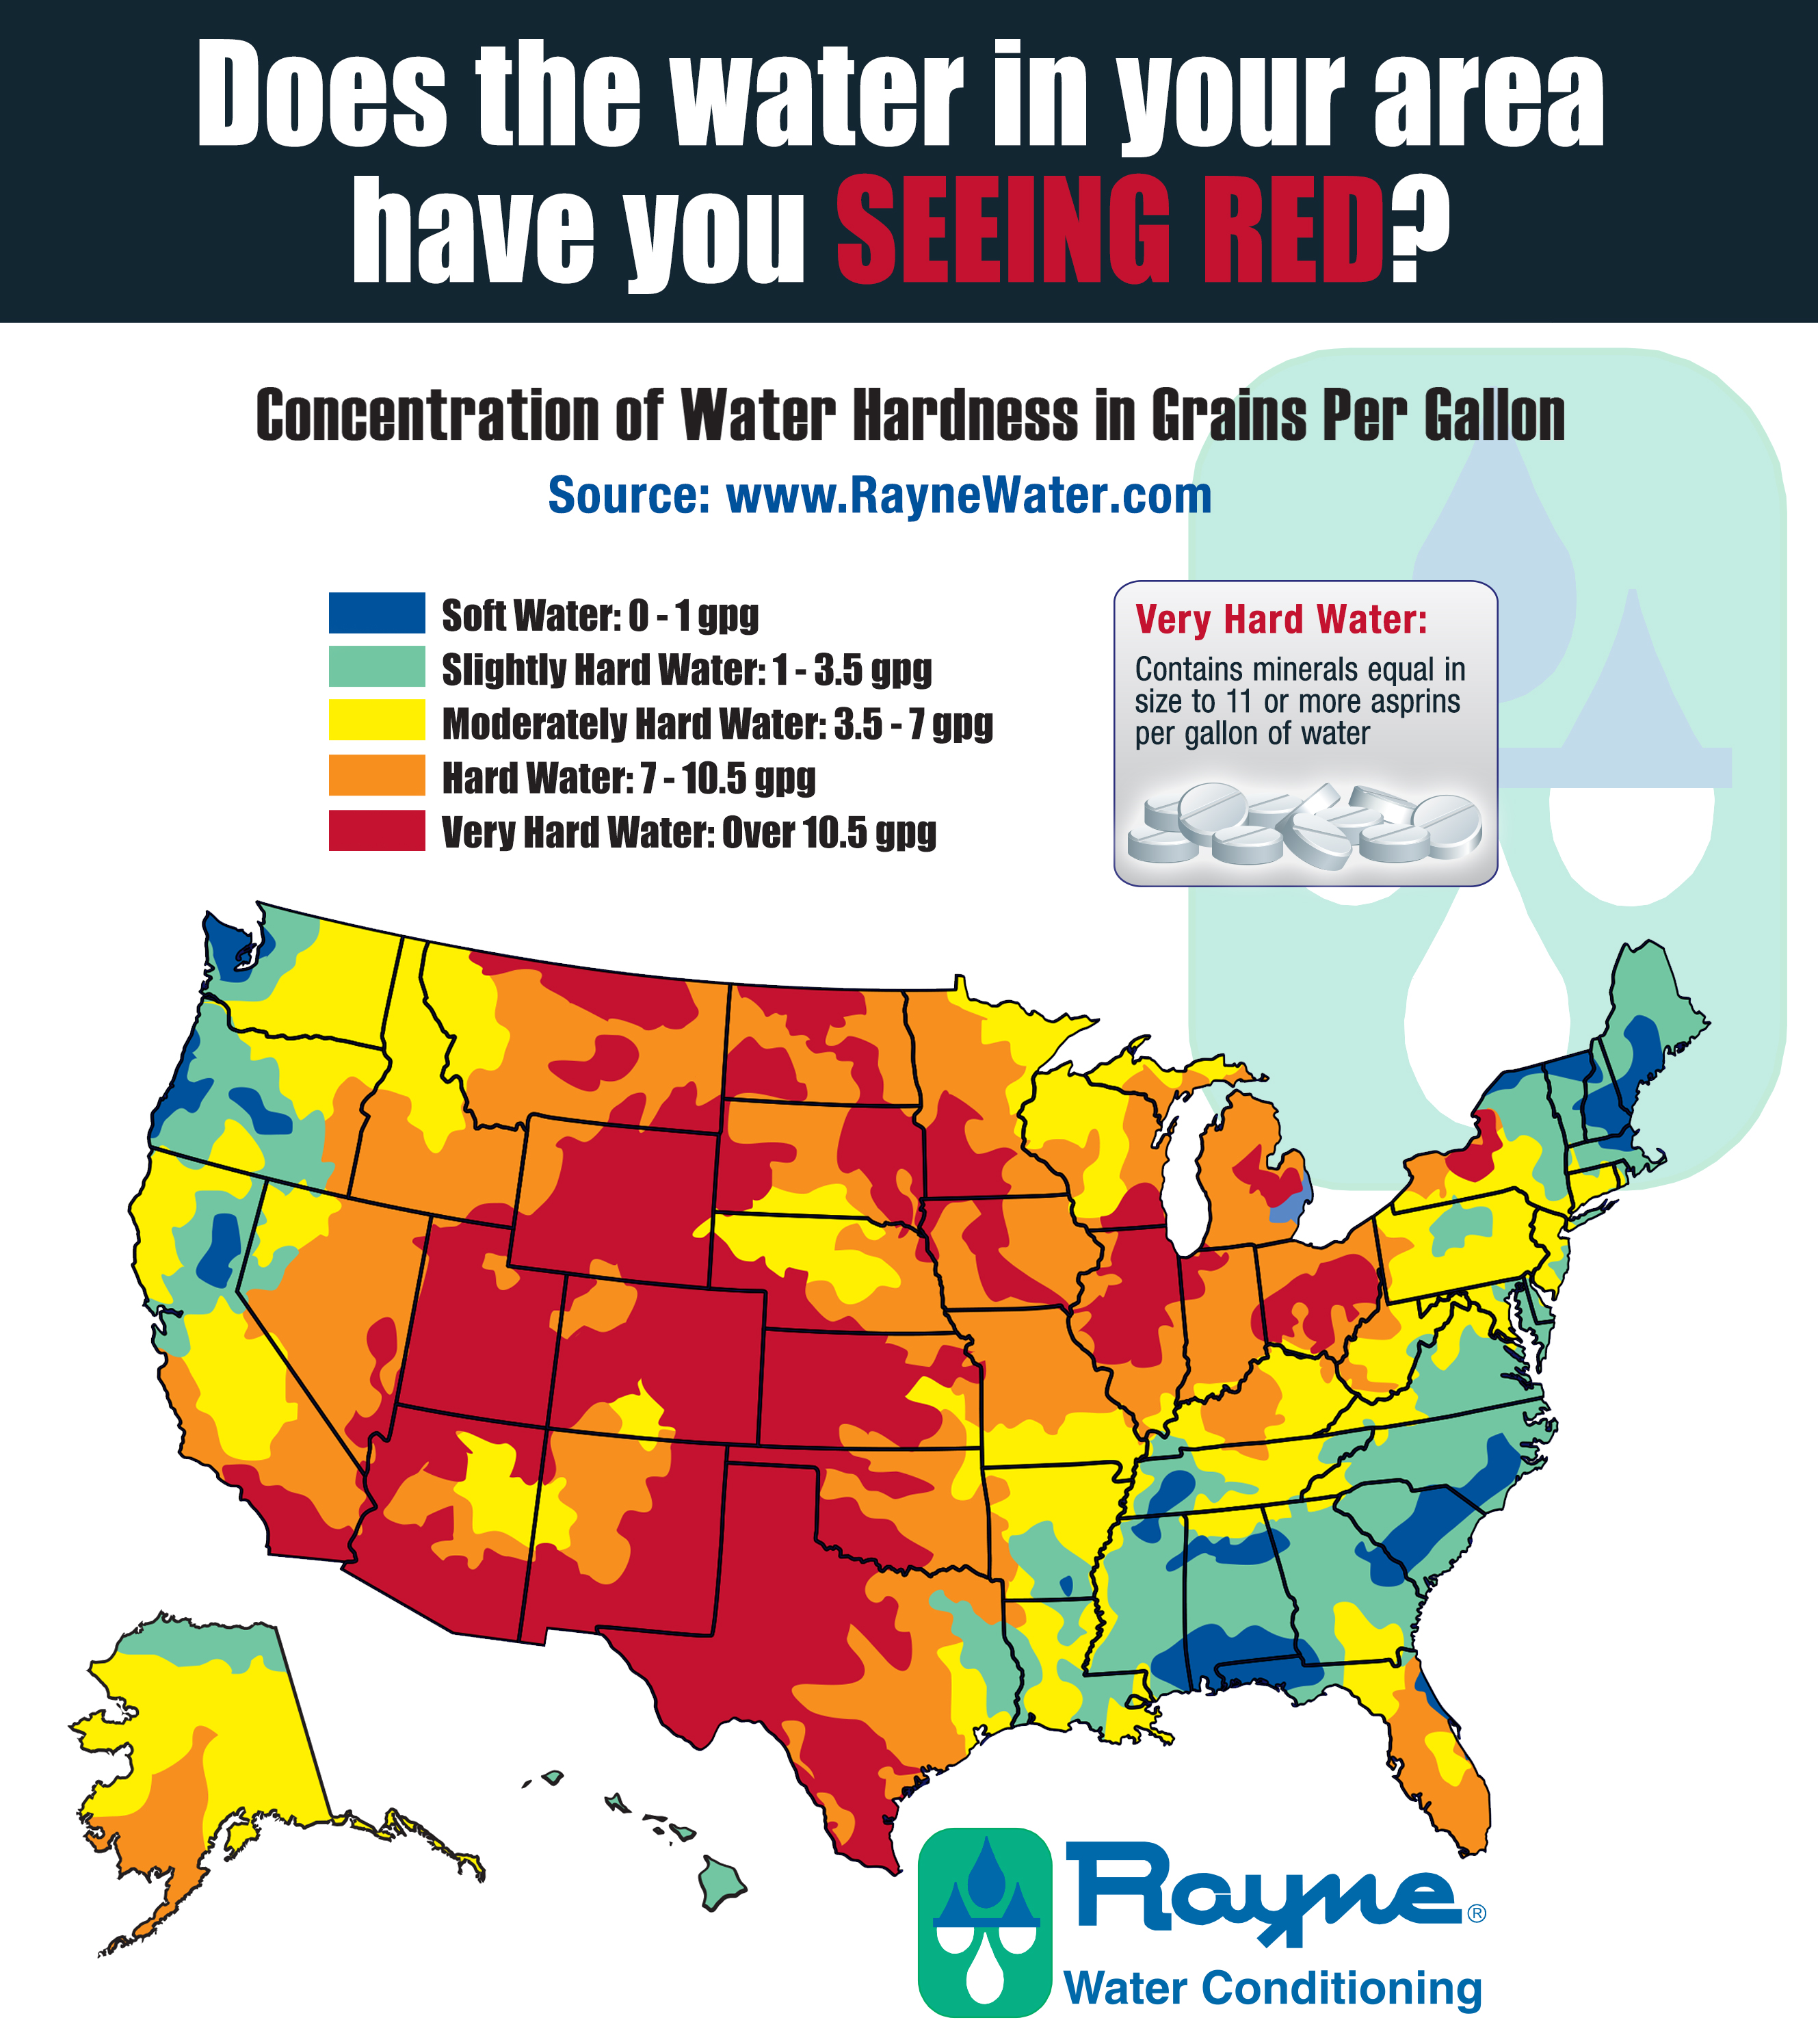 Rayne Water Corporation Softener Systems Receive The Water